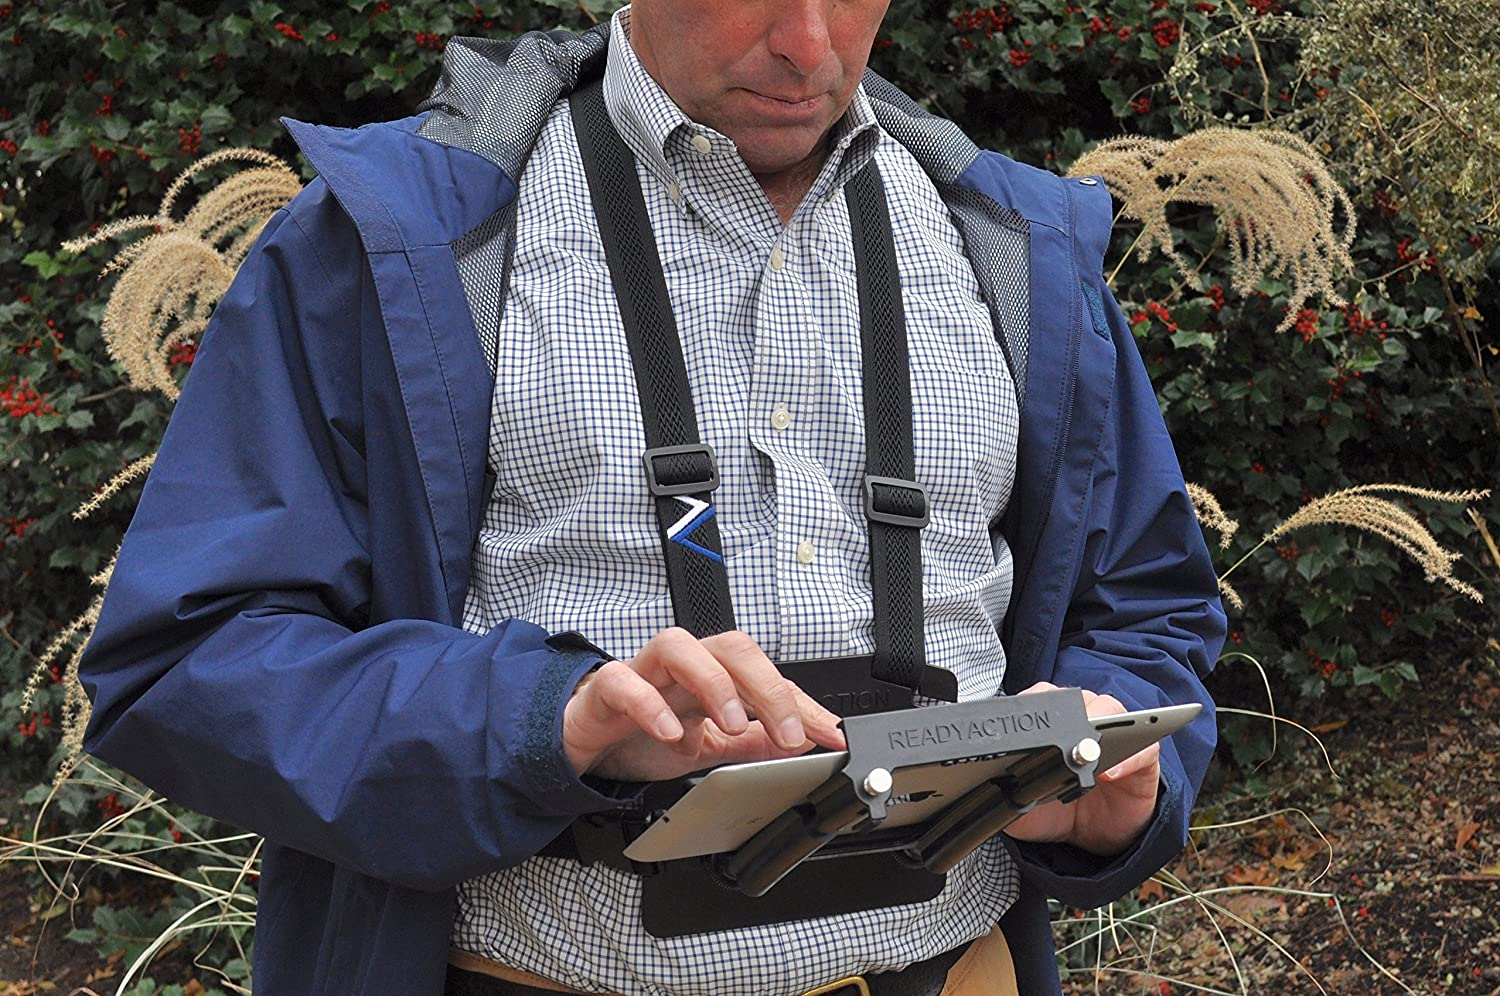 READYACTION Office - Chest Harness for iPad Air, iPad Mini, Surface Pro and Similar Tablets